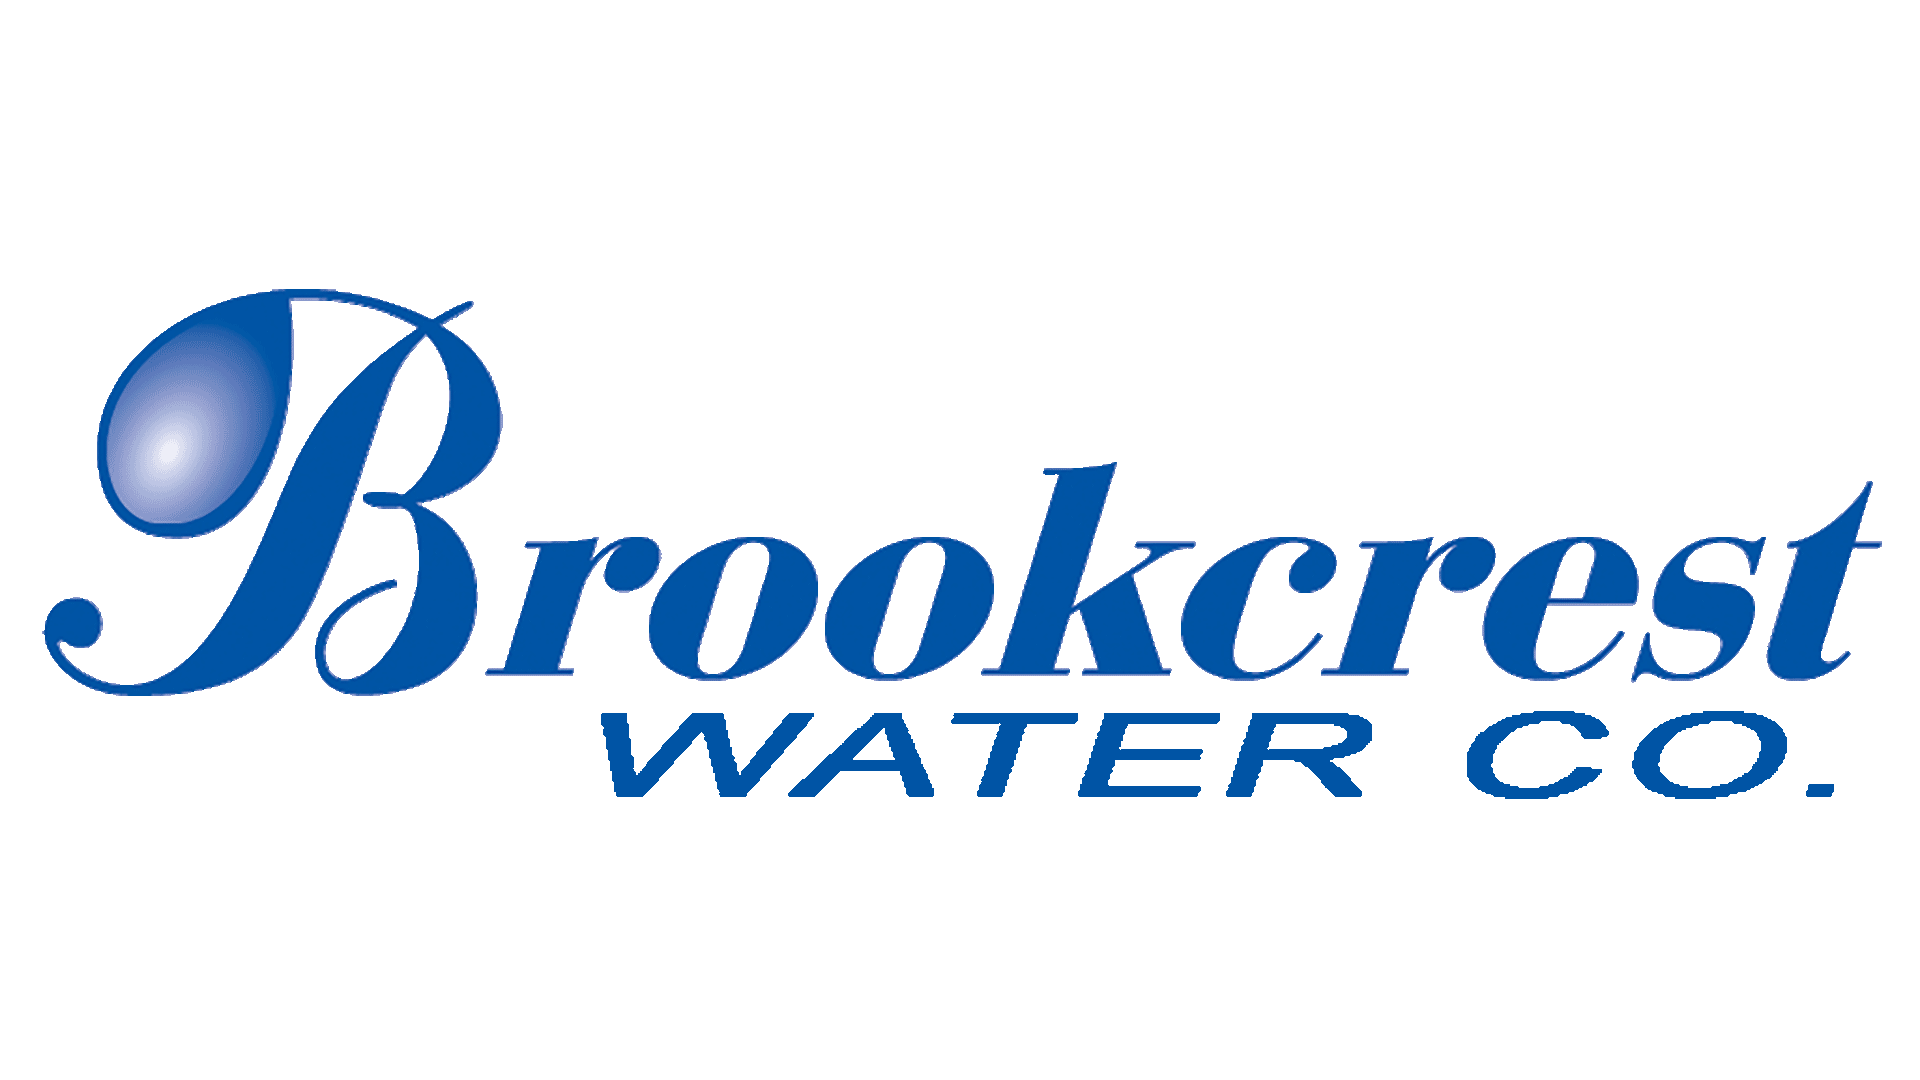 Brookcrest Water Co.